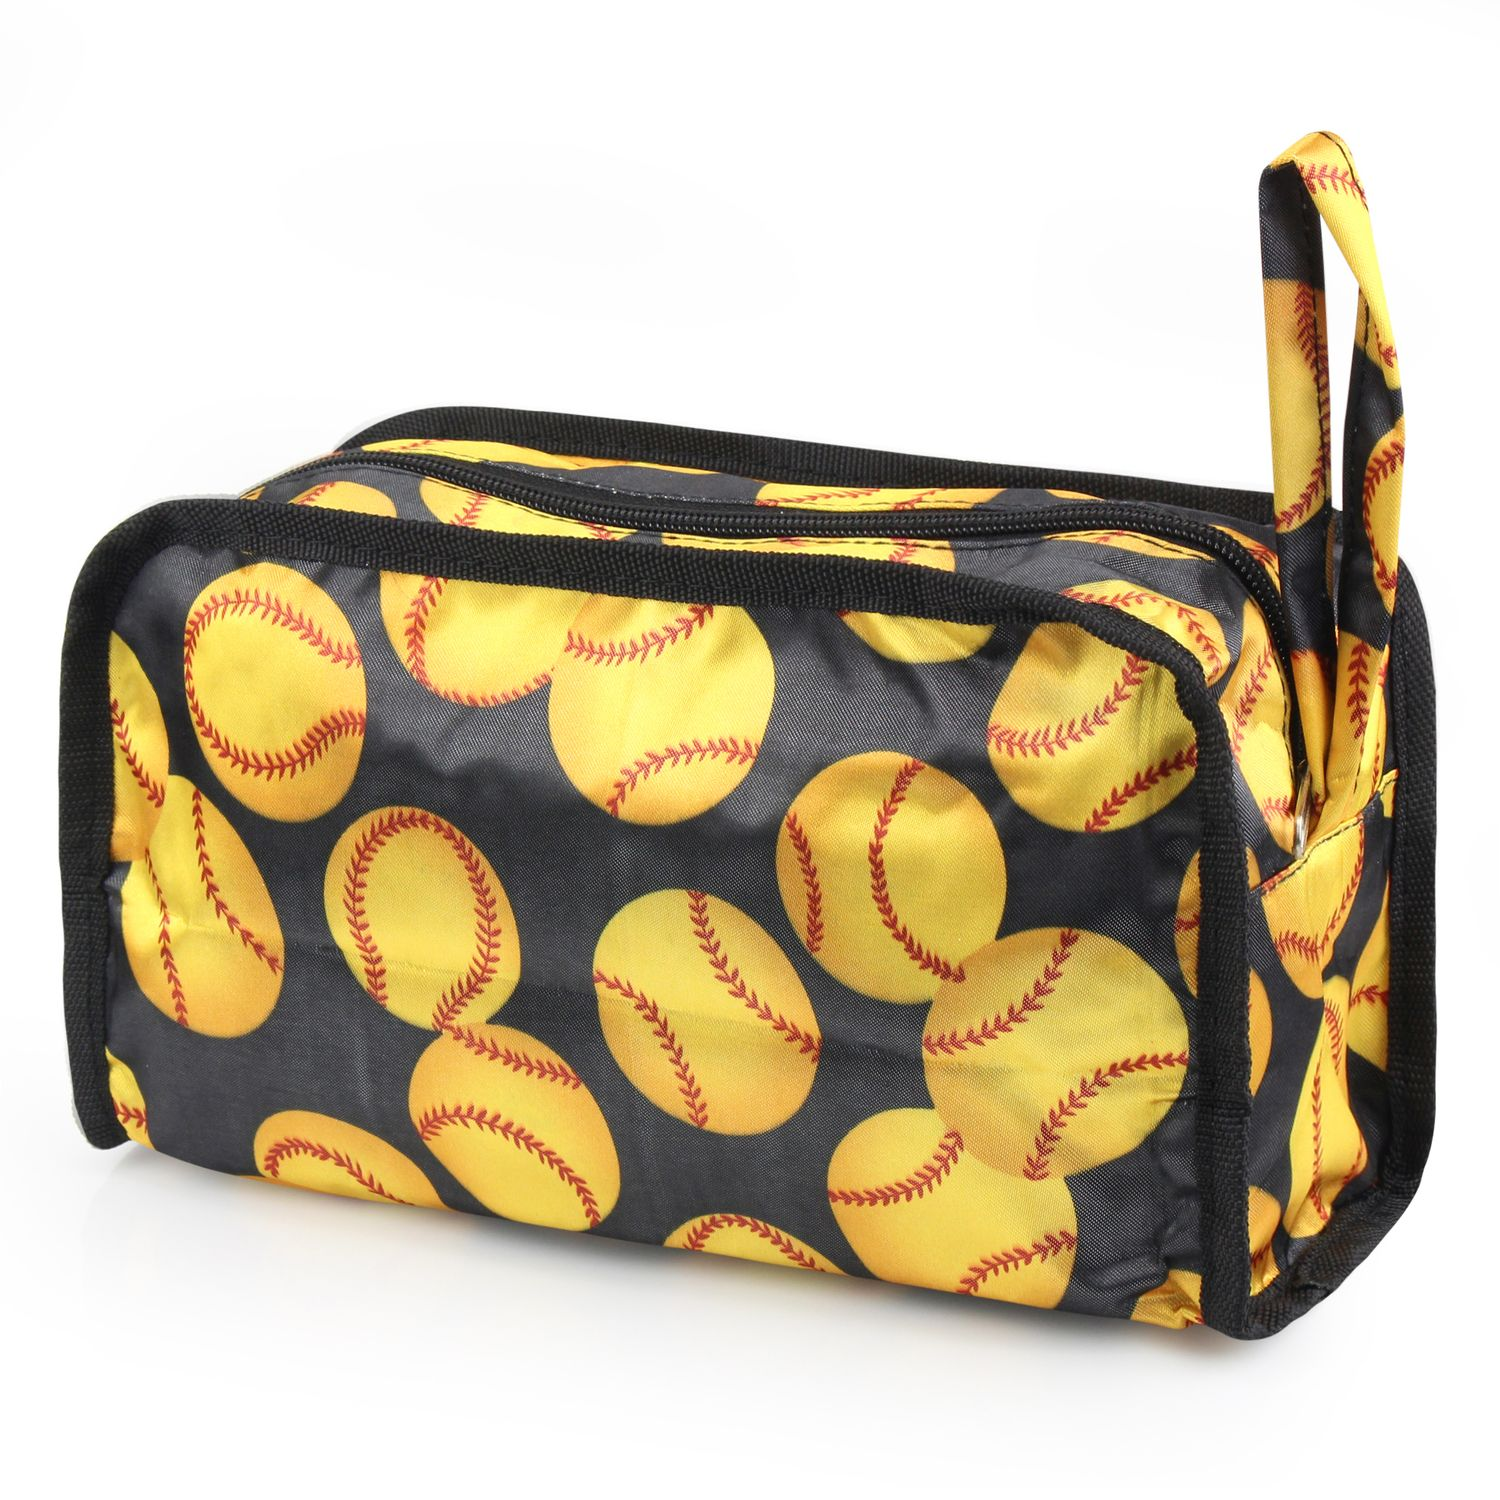 Travel Makeup Bag Pencil Case Cosmetic Storage Organizer Bag Toiletry Zip Pouch w/Wrist Handle by Zodaca